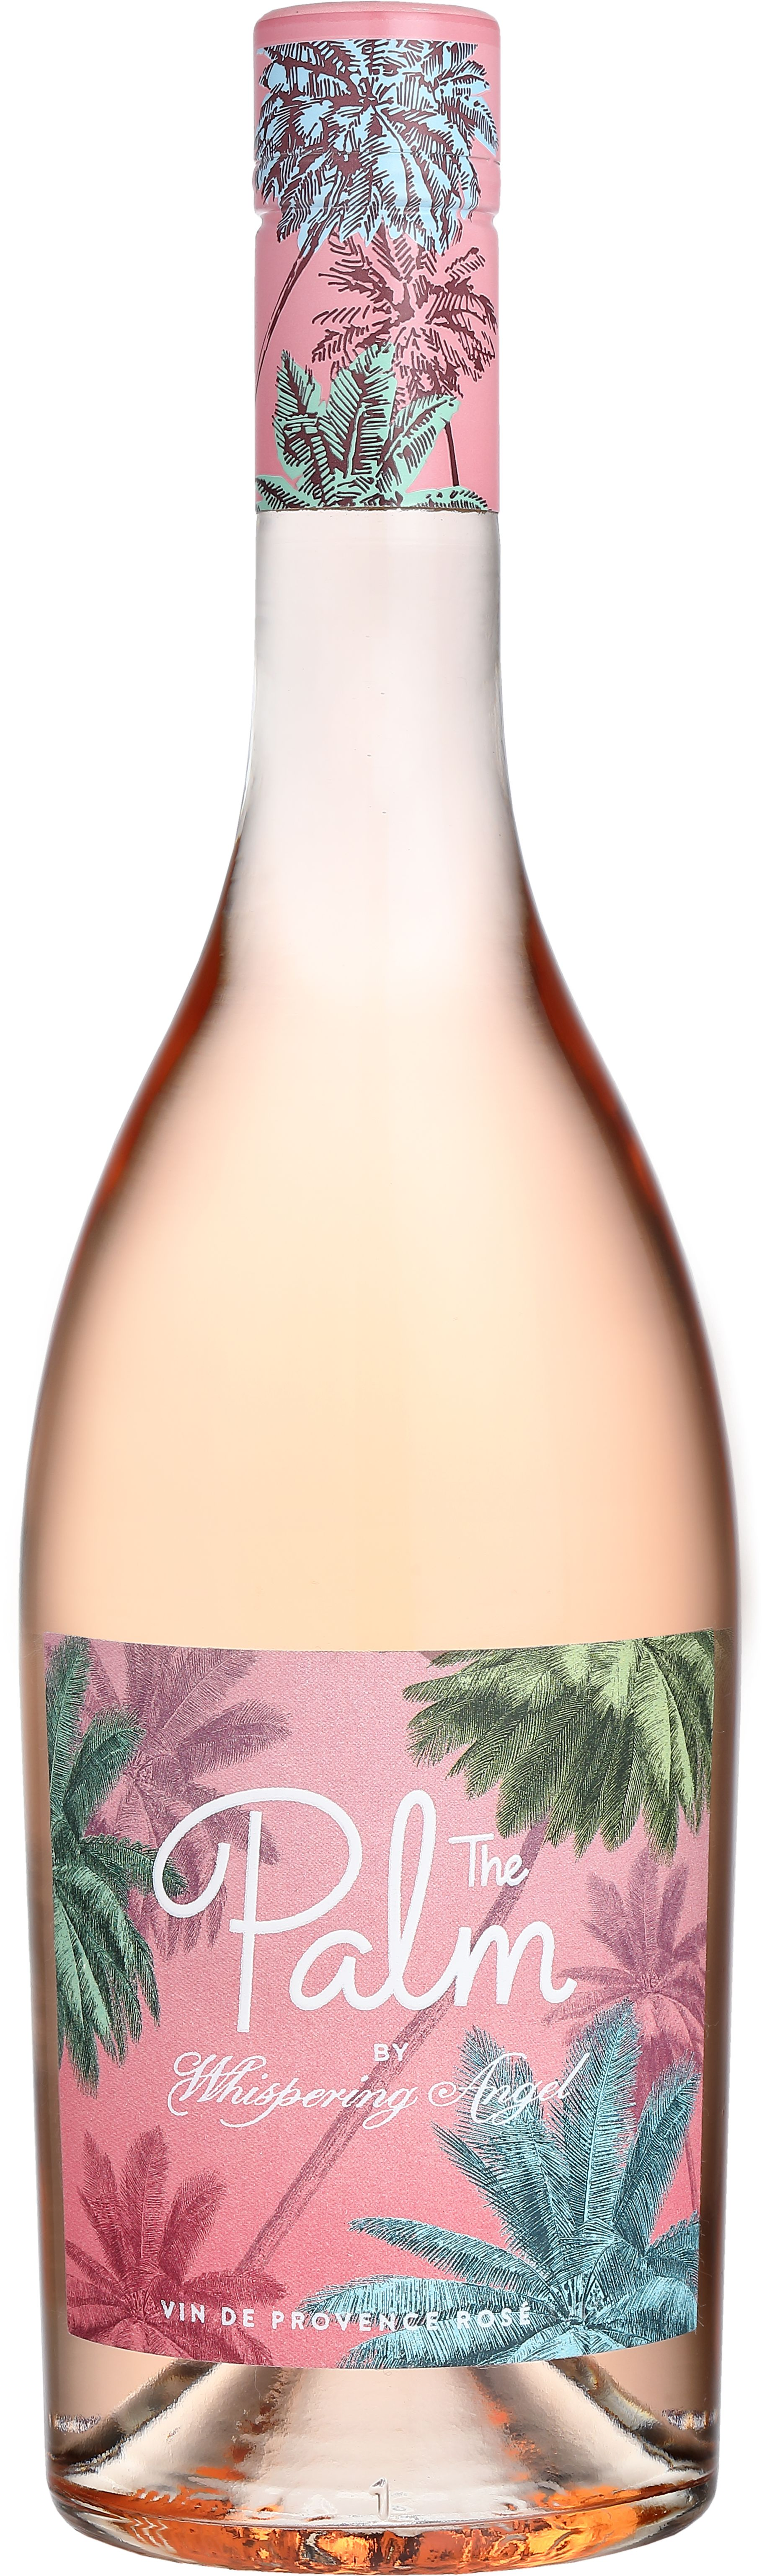 The Palm by Whispering Angel Rose 2018  Front Bottle Shot